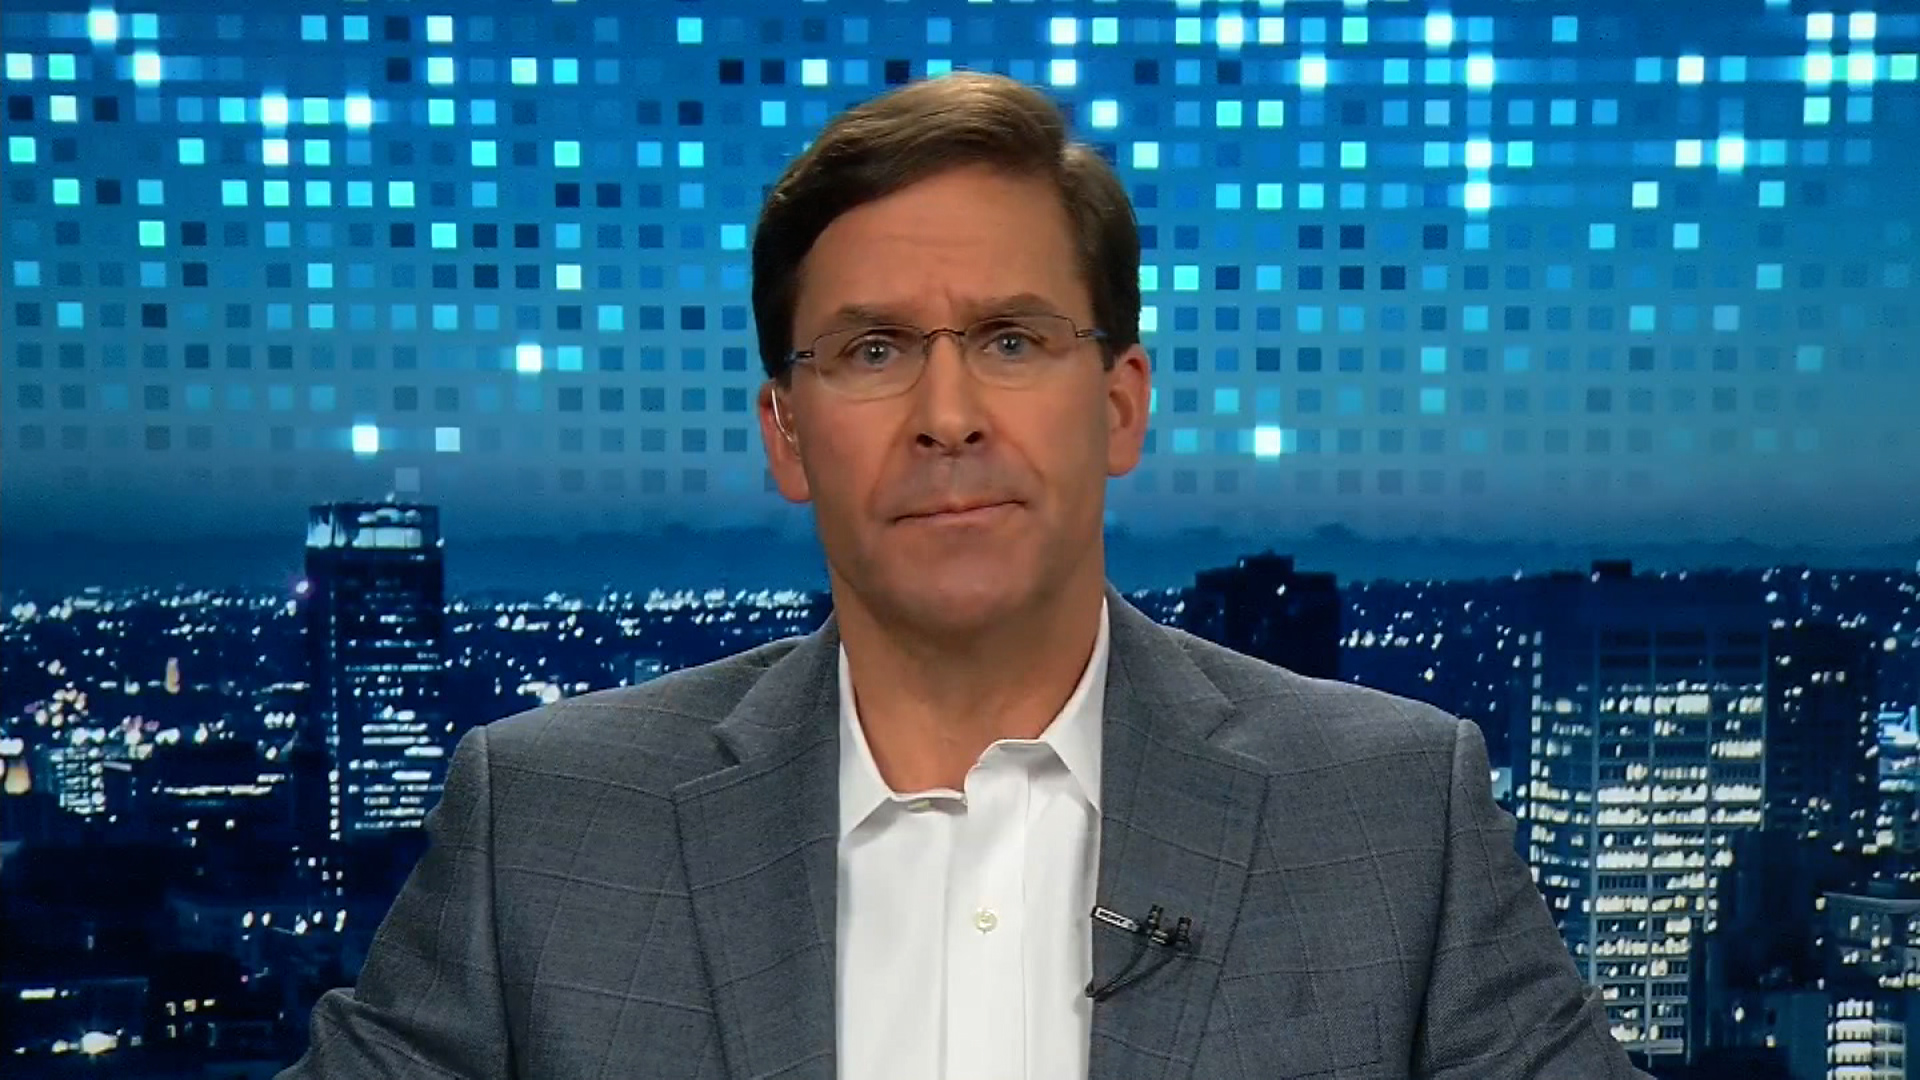 Mark Esper during his interview with Christiane Amanpour.